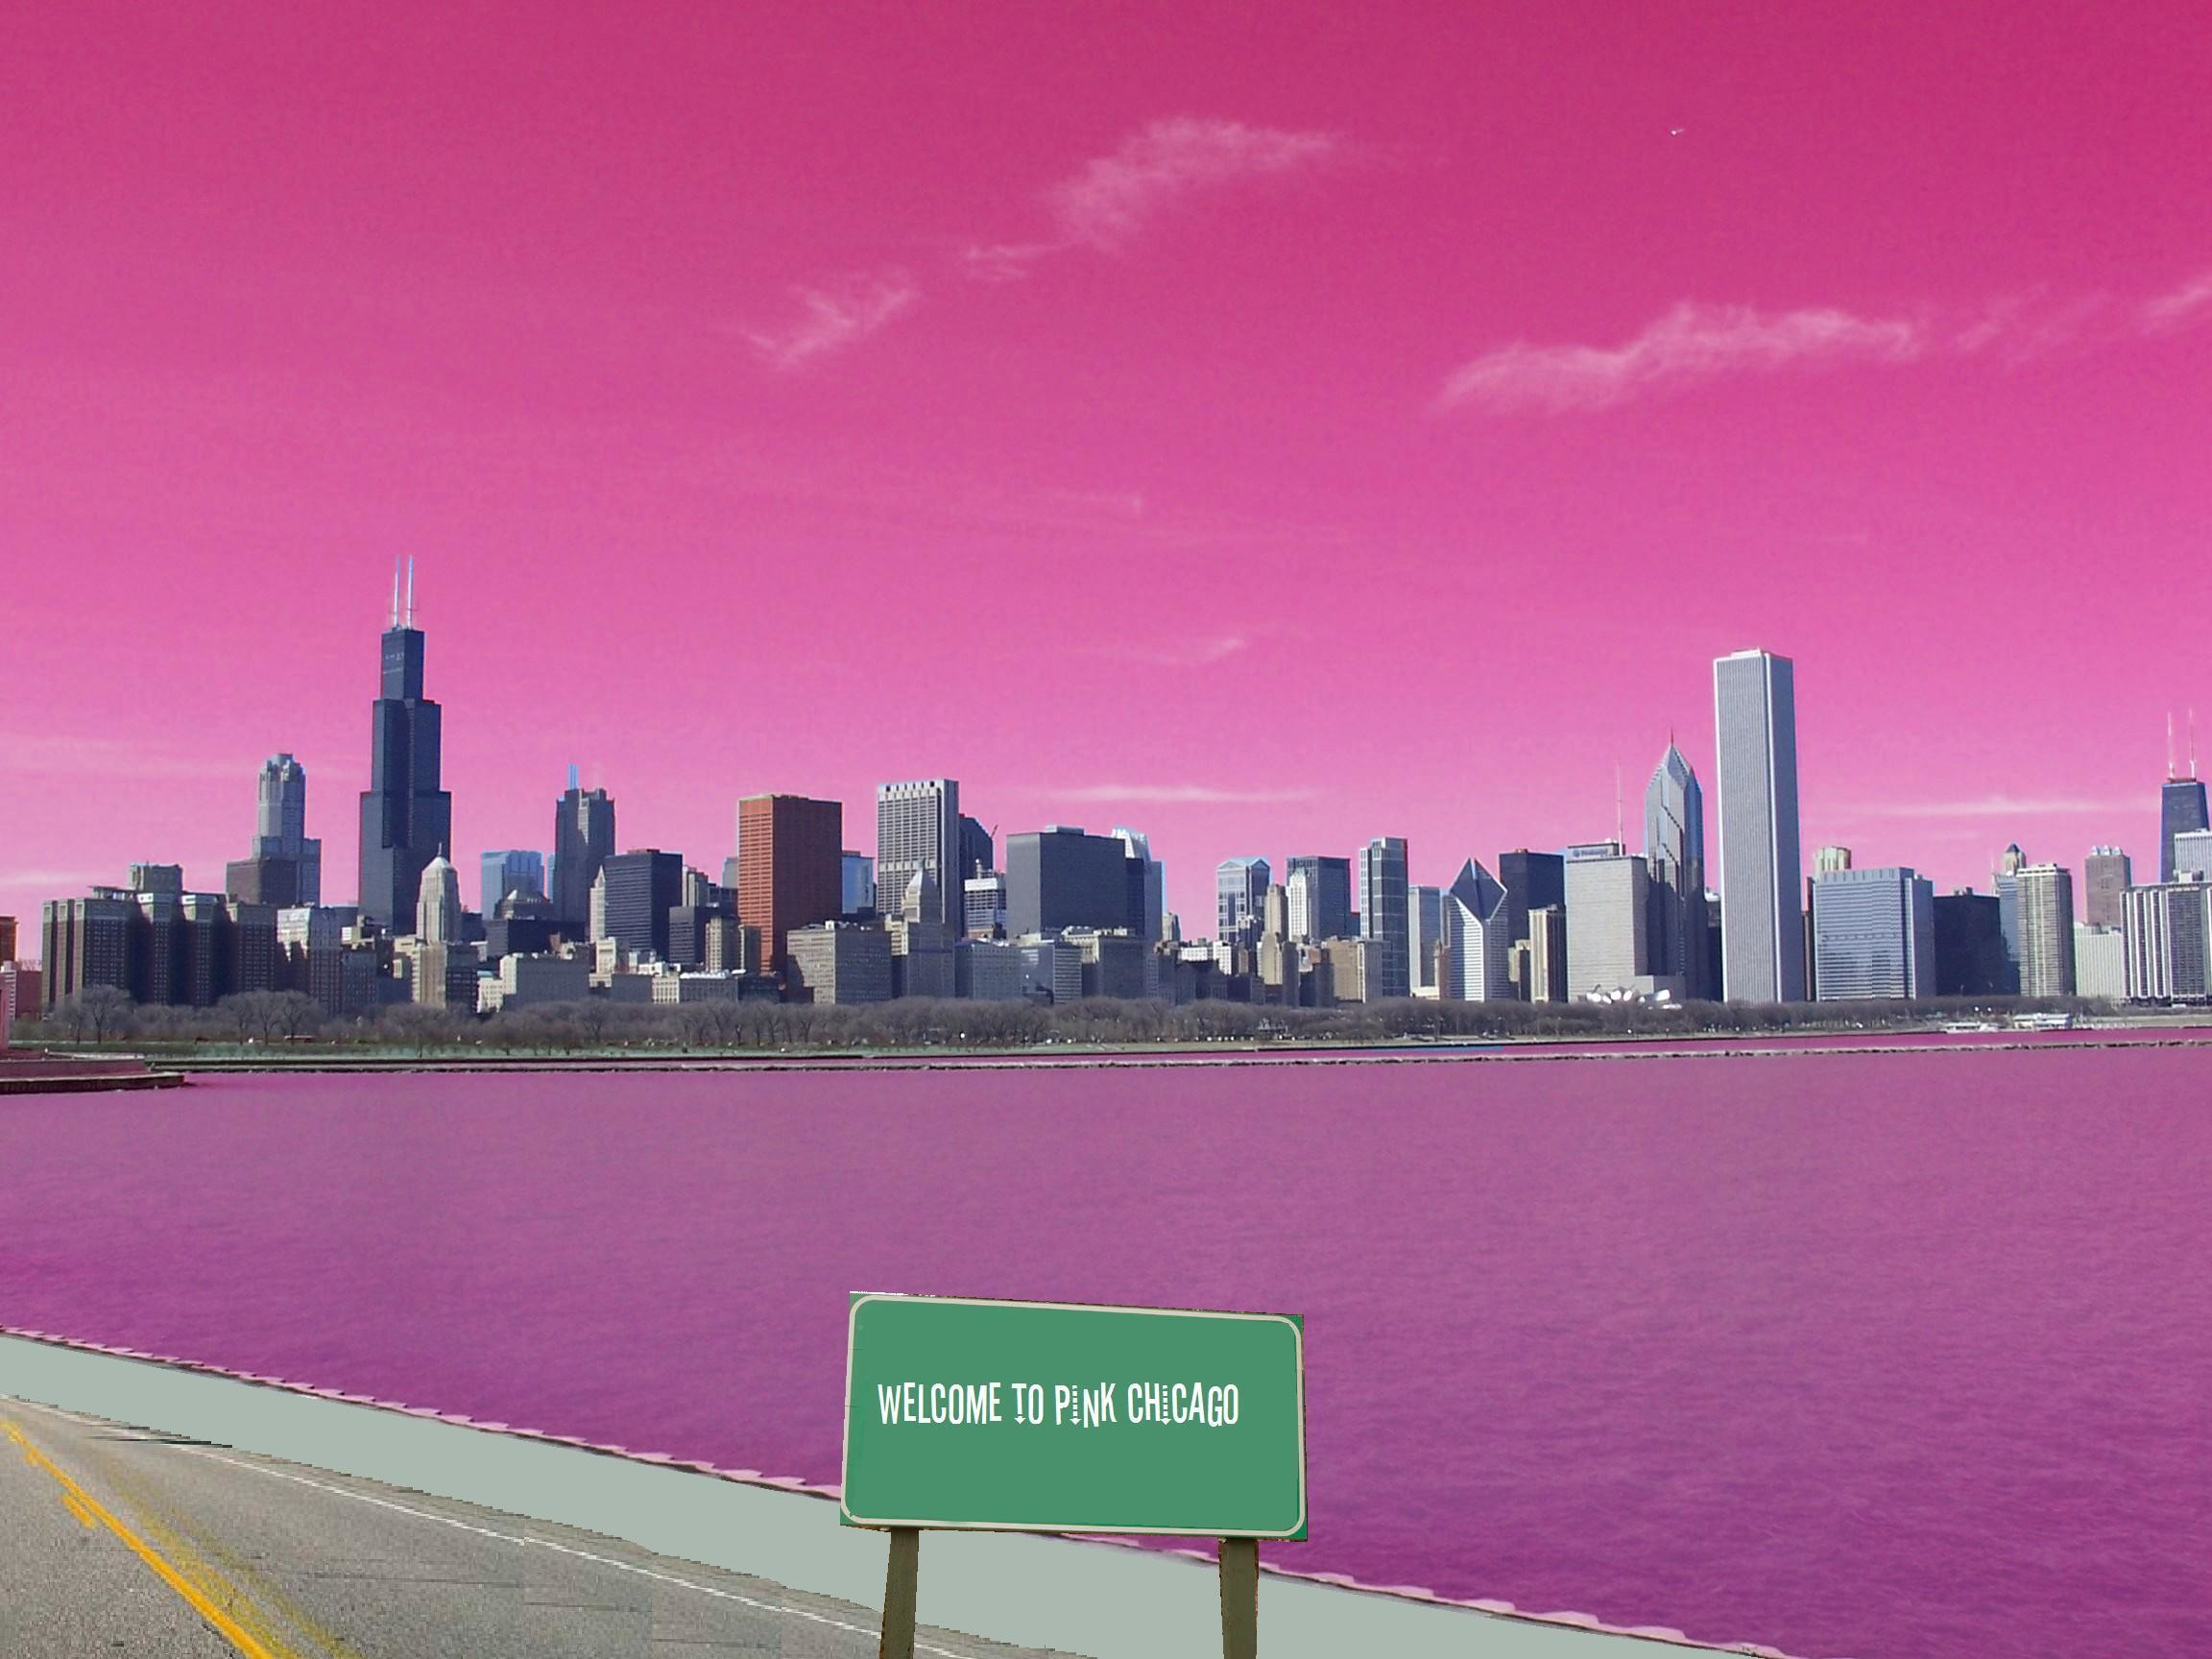 2304x1728 Chicago images Pink Chicago HD wallpaper and background photos